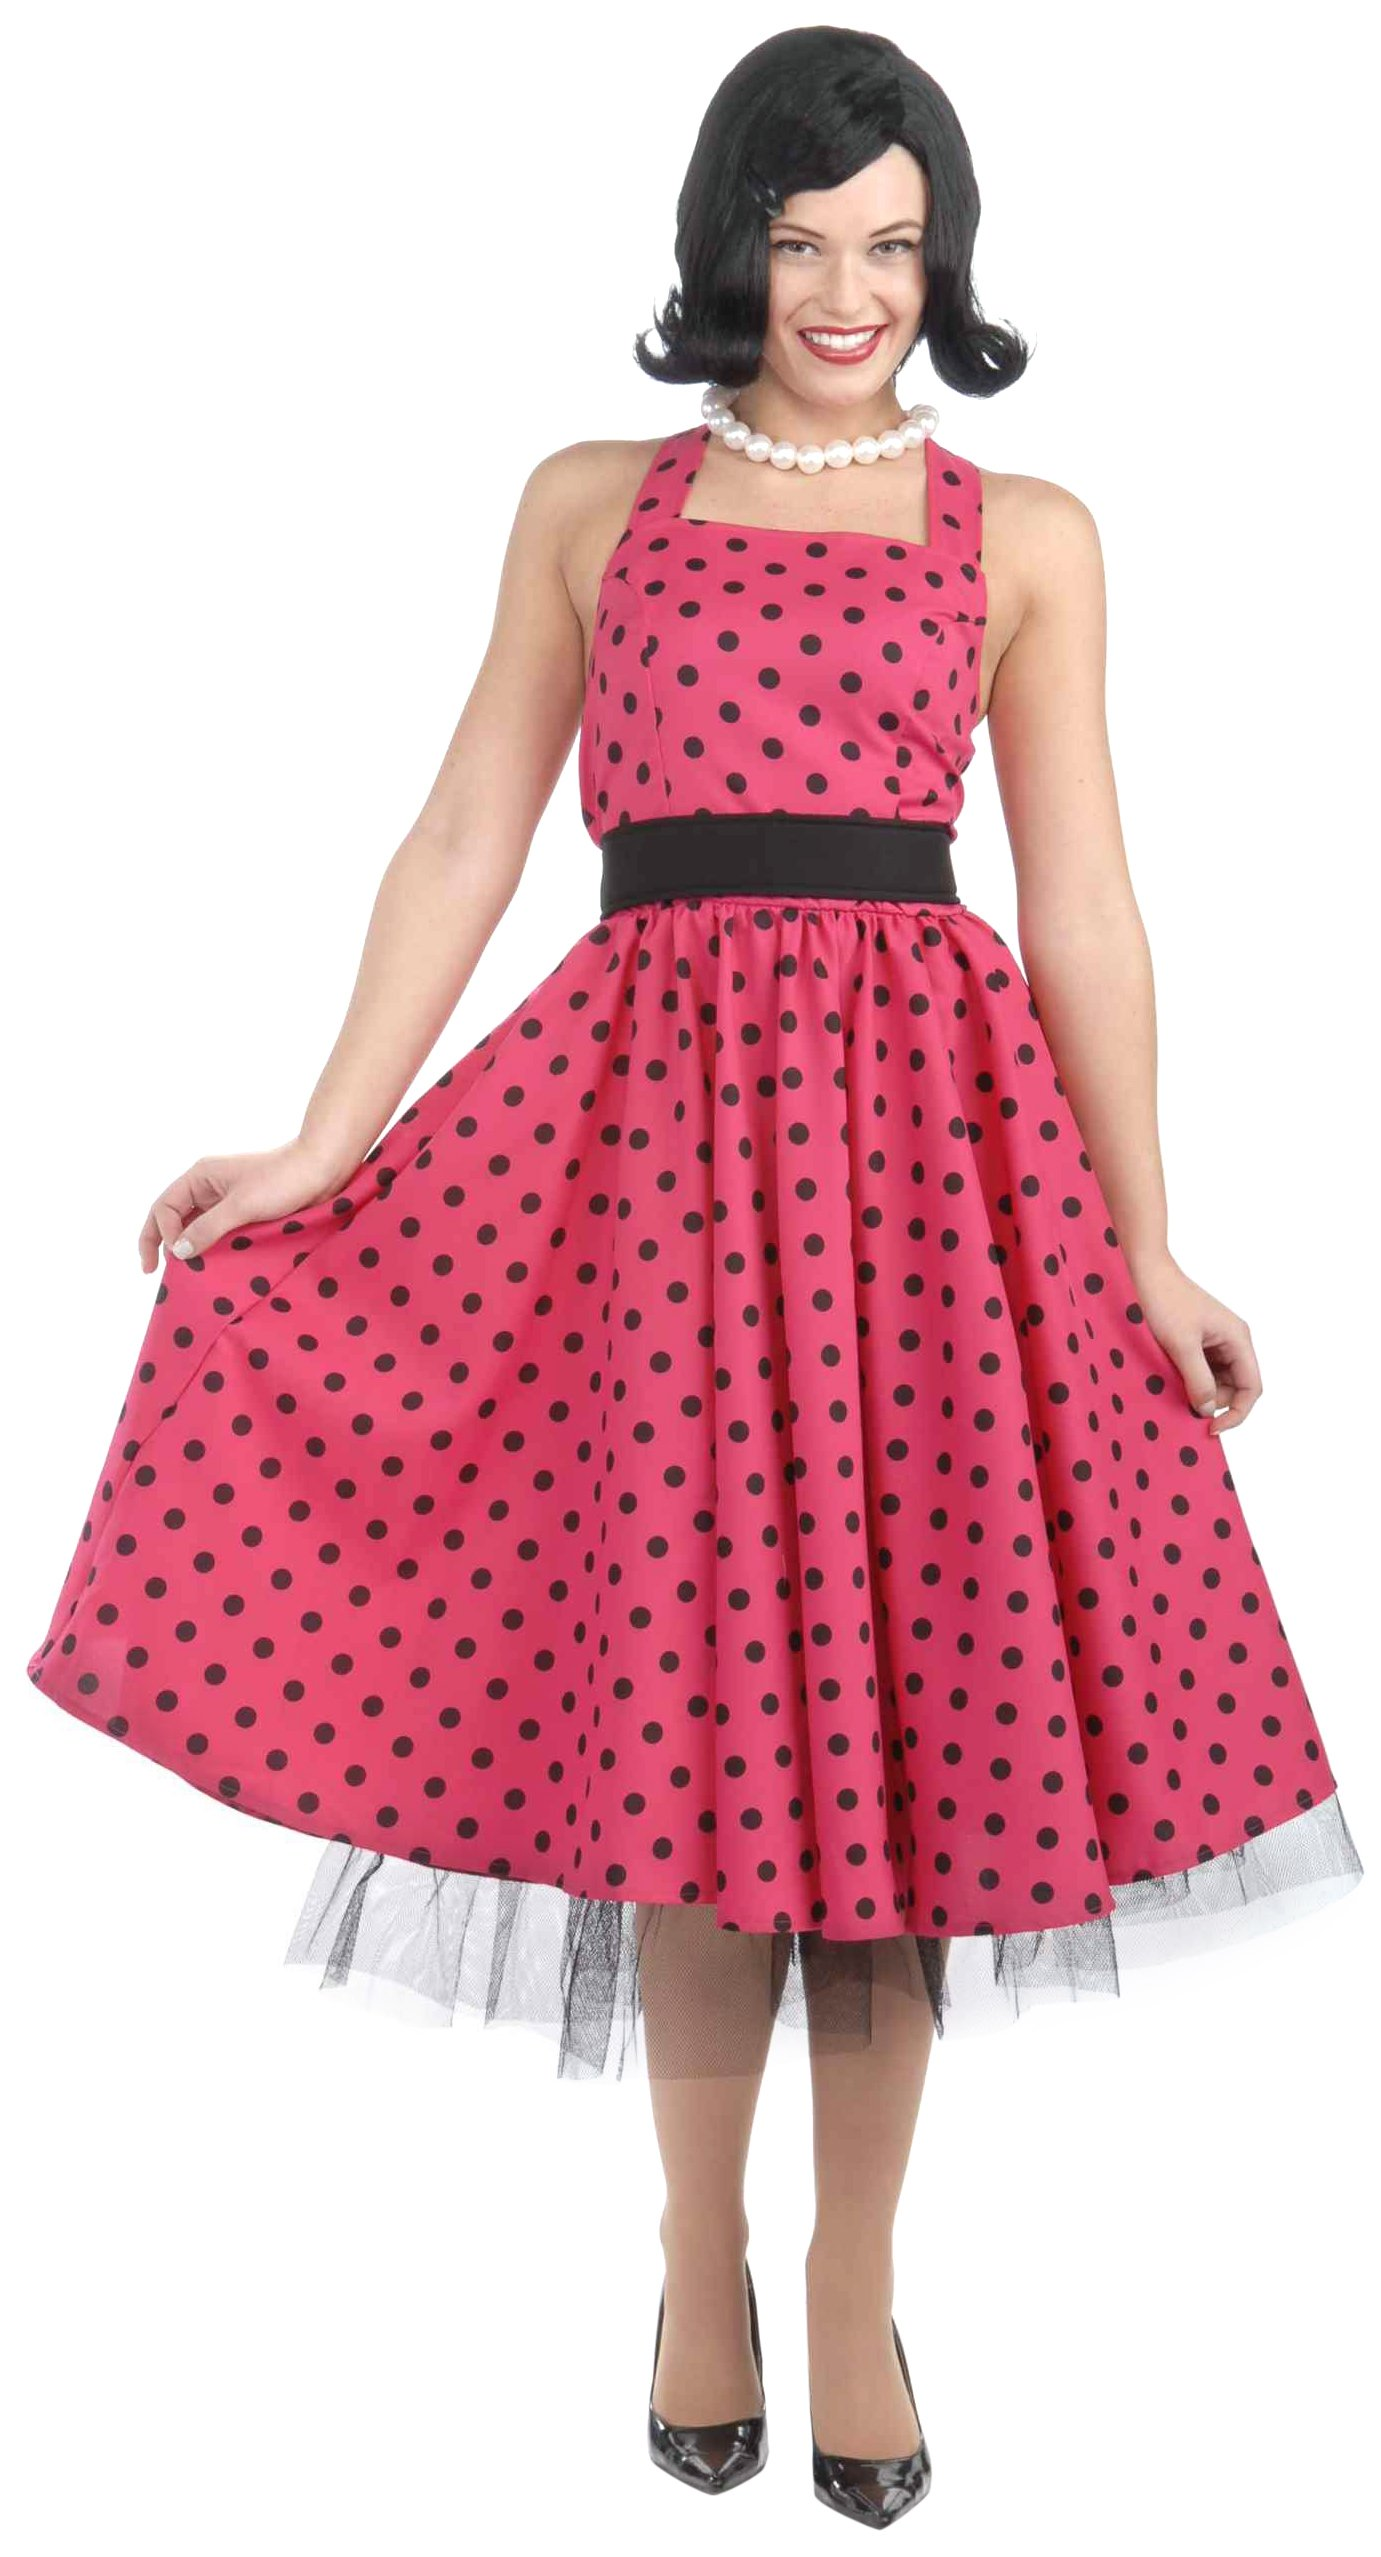 Forum Novelties Women's Pretty In Polka Dots Costume, Pink, X-Small/Small